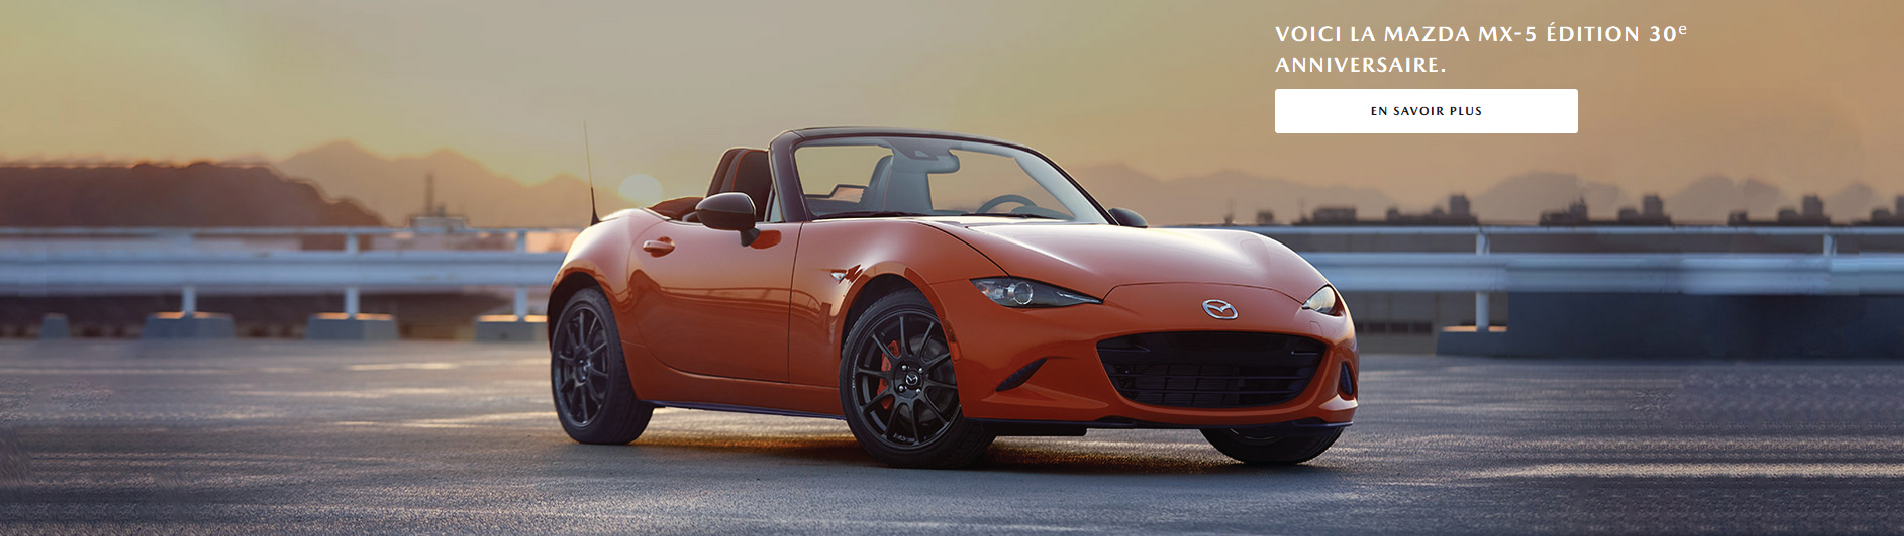 MX-5 St Laurent